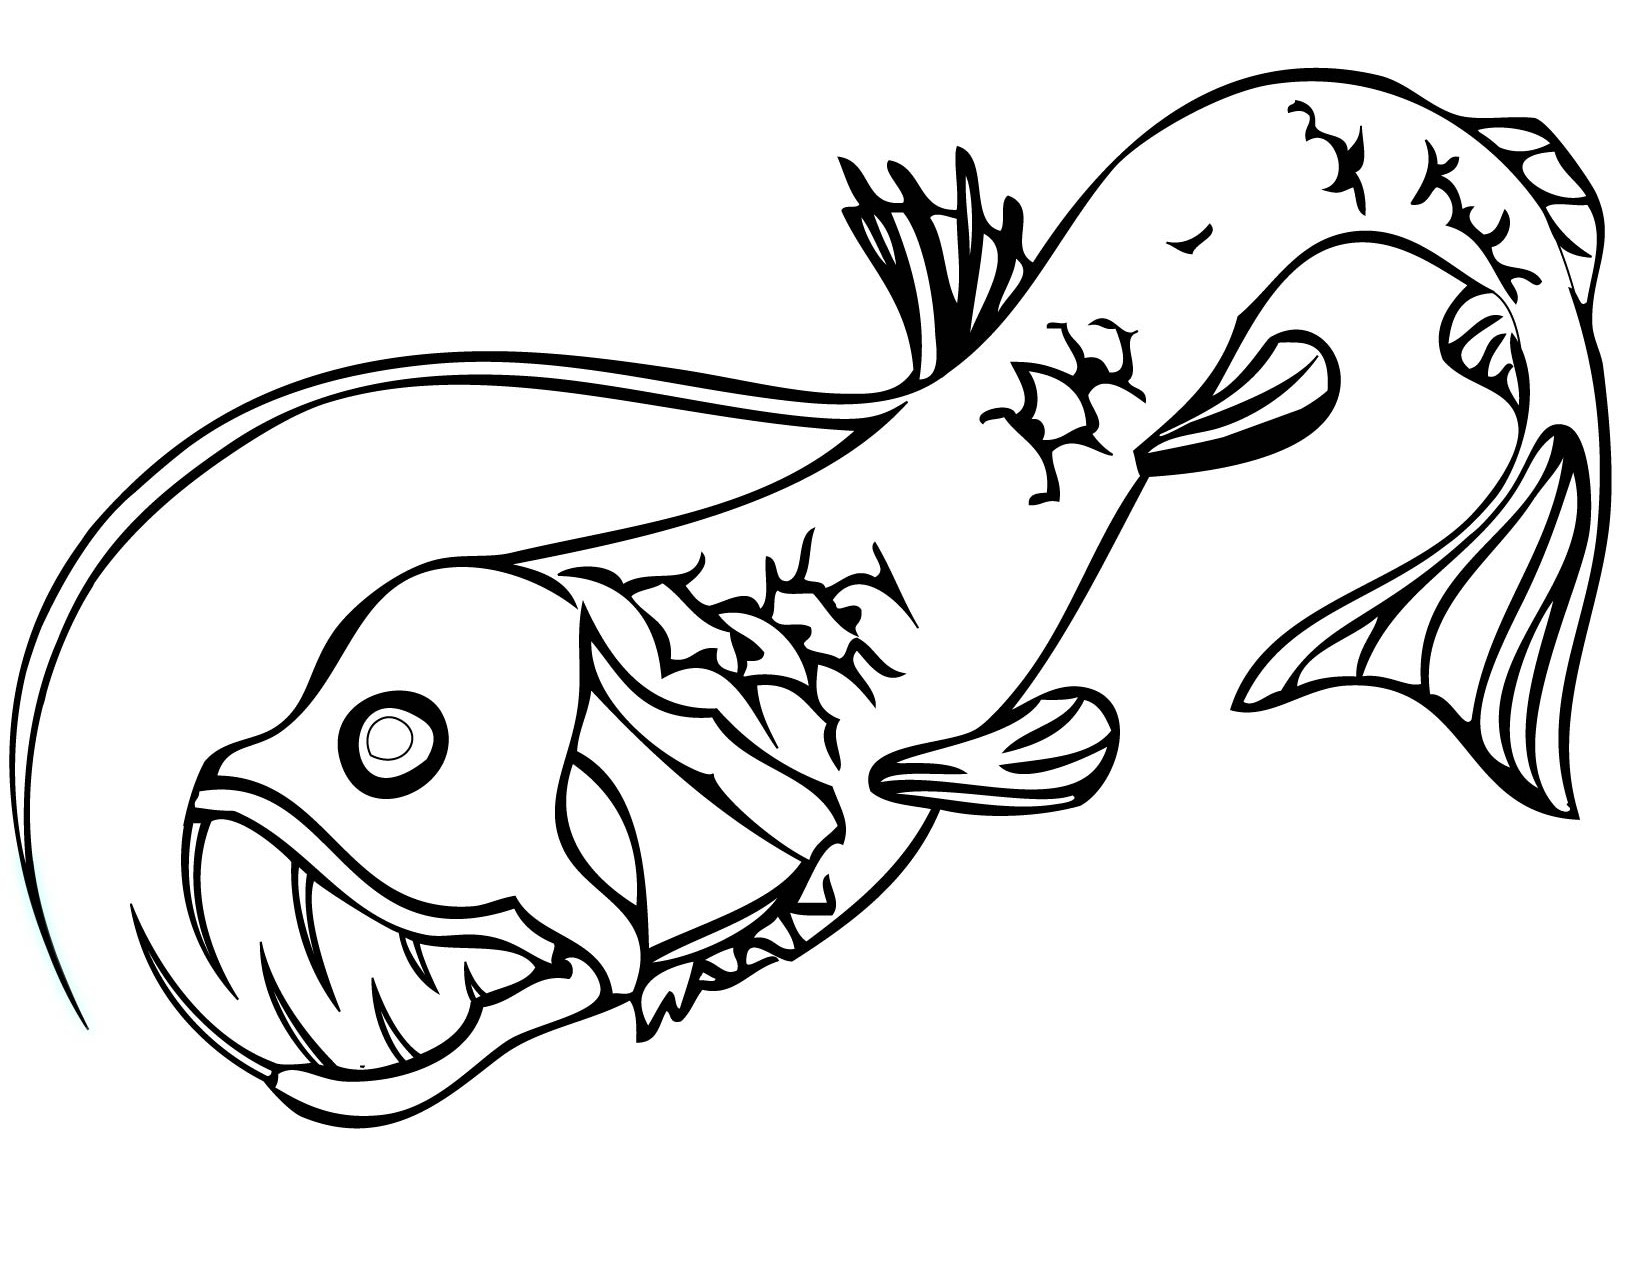 1650x1275 Angler Fish Coloring Page